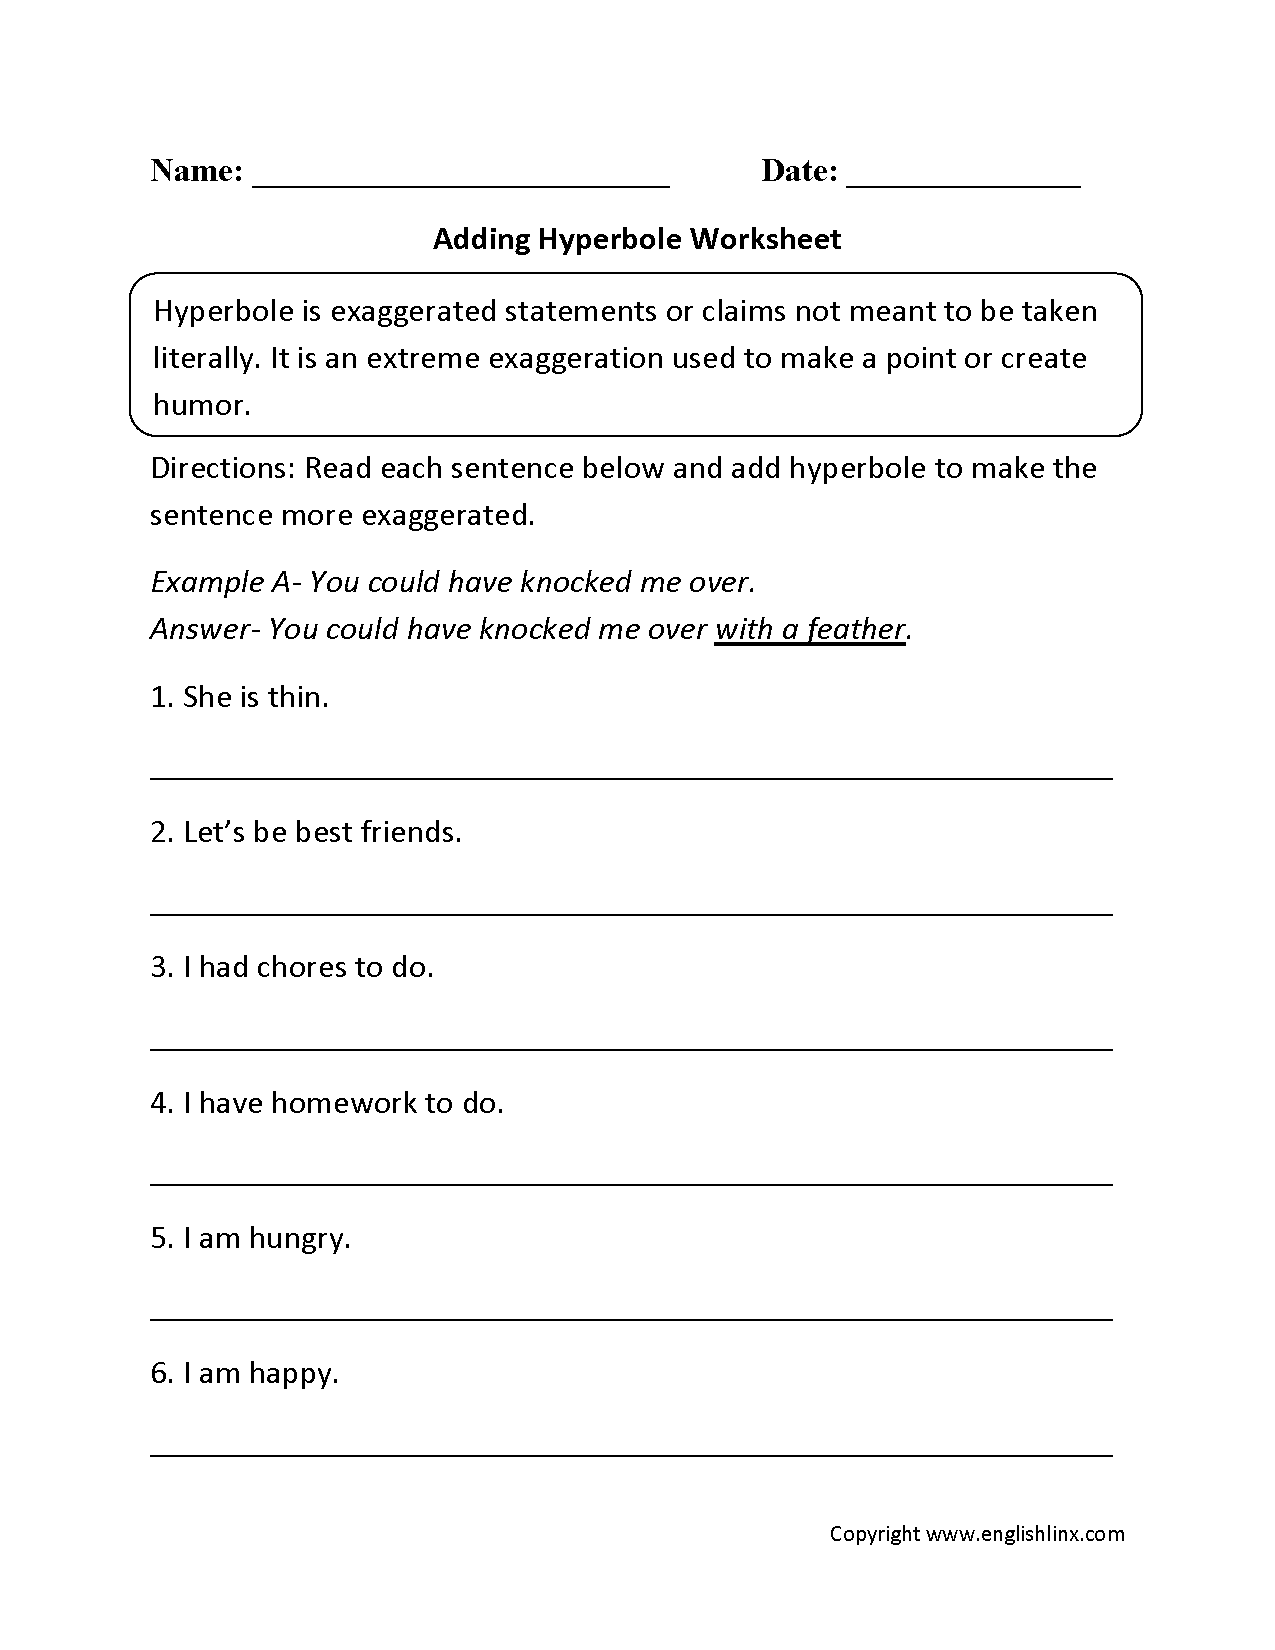 worksheet Oxymoron Worksheet figurative language worksheet pdf free worksheets library firework by katy perry song lyrics lesson